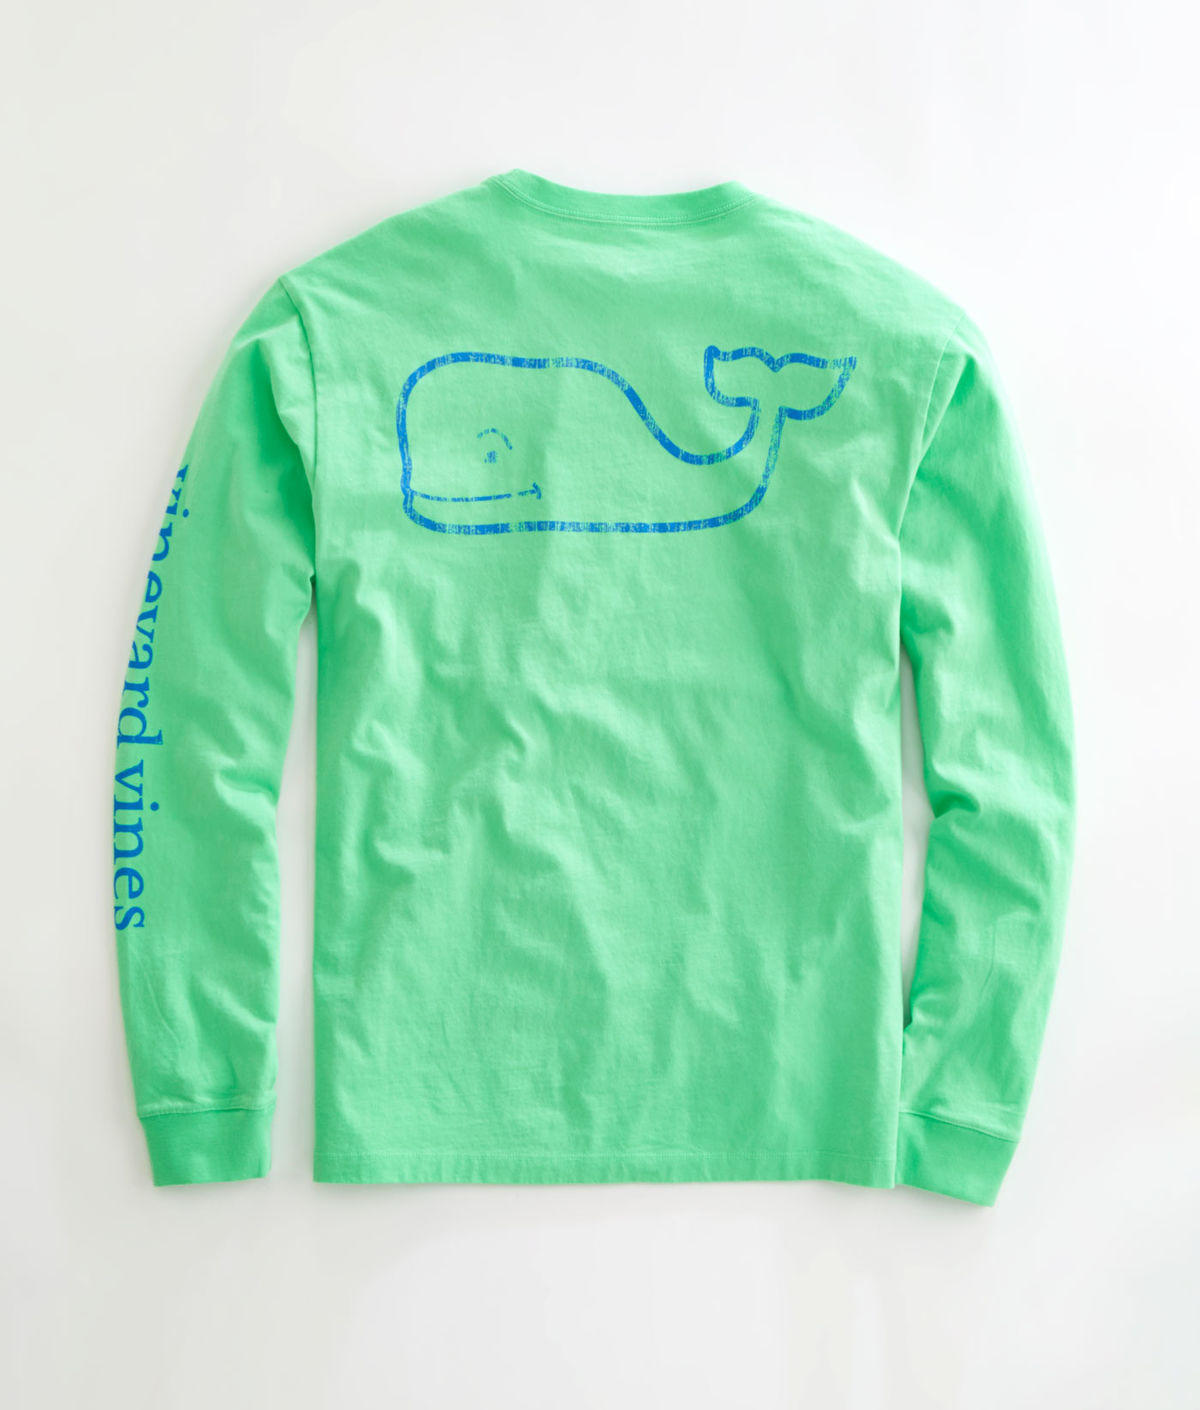 ffbcac9a29 Vineyard Vines Vintage Whale Graphic from Shop Southern Roots TX